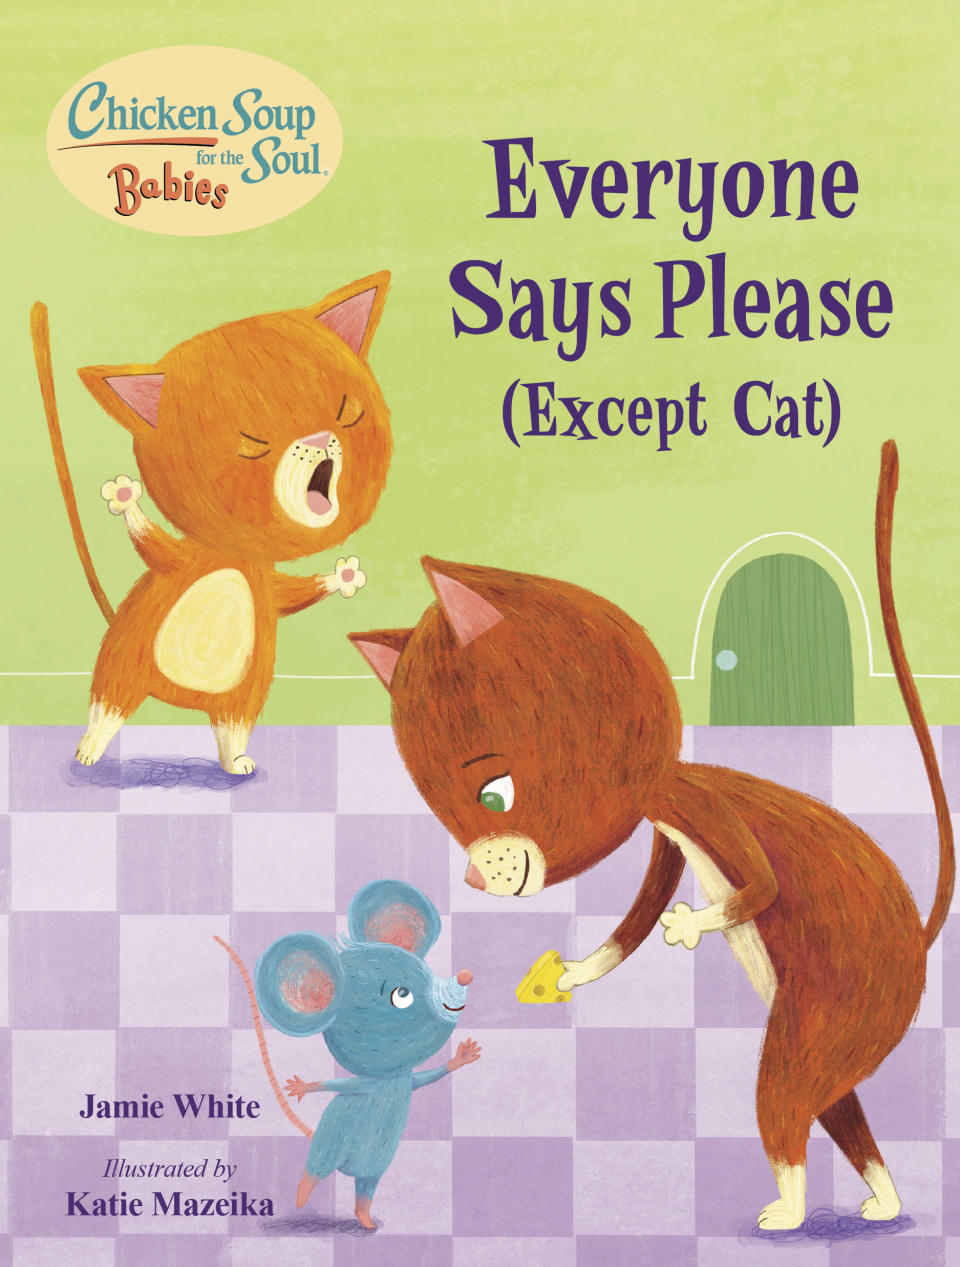 """This cover image released by Charlesbridge shows """"Everyone Says Please (Except Cat)"""" by Jamie White. Chicken Soup for the Soul has reached a partnership with the children's publisher Charlesbridge for two new series of books, the two publishers announced Tuesday. Chicken Soup for the Soul Babies will be for babies and toddlers, up to age 3, and Chicken Soup for the Soul Kids will be for ages 4-7. (Charlesbridge via AP)"""